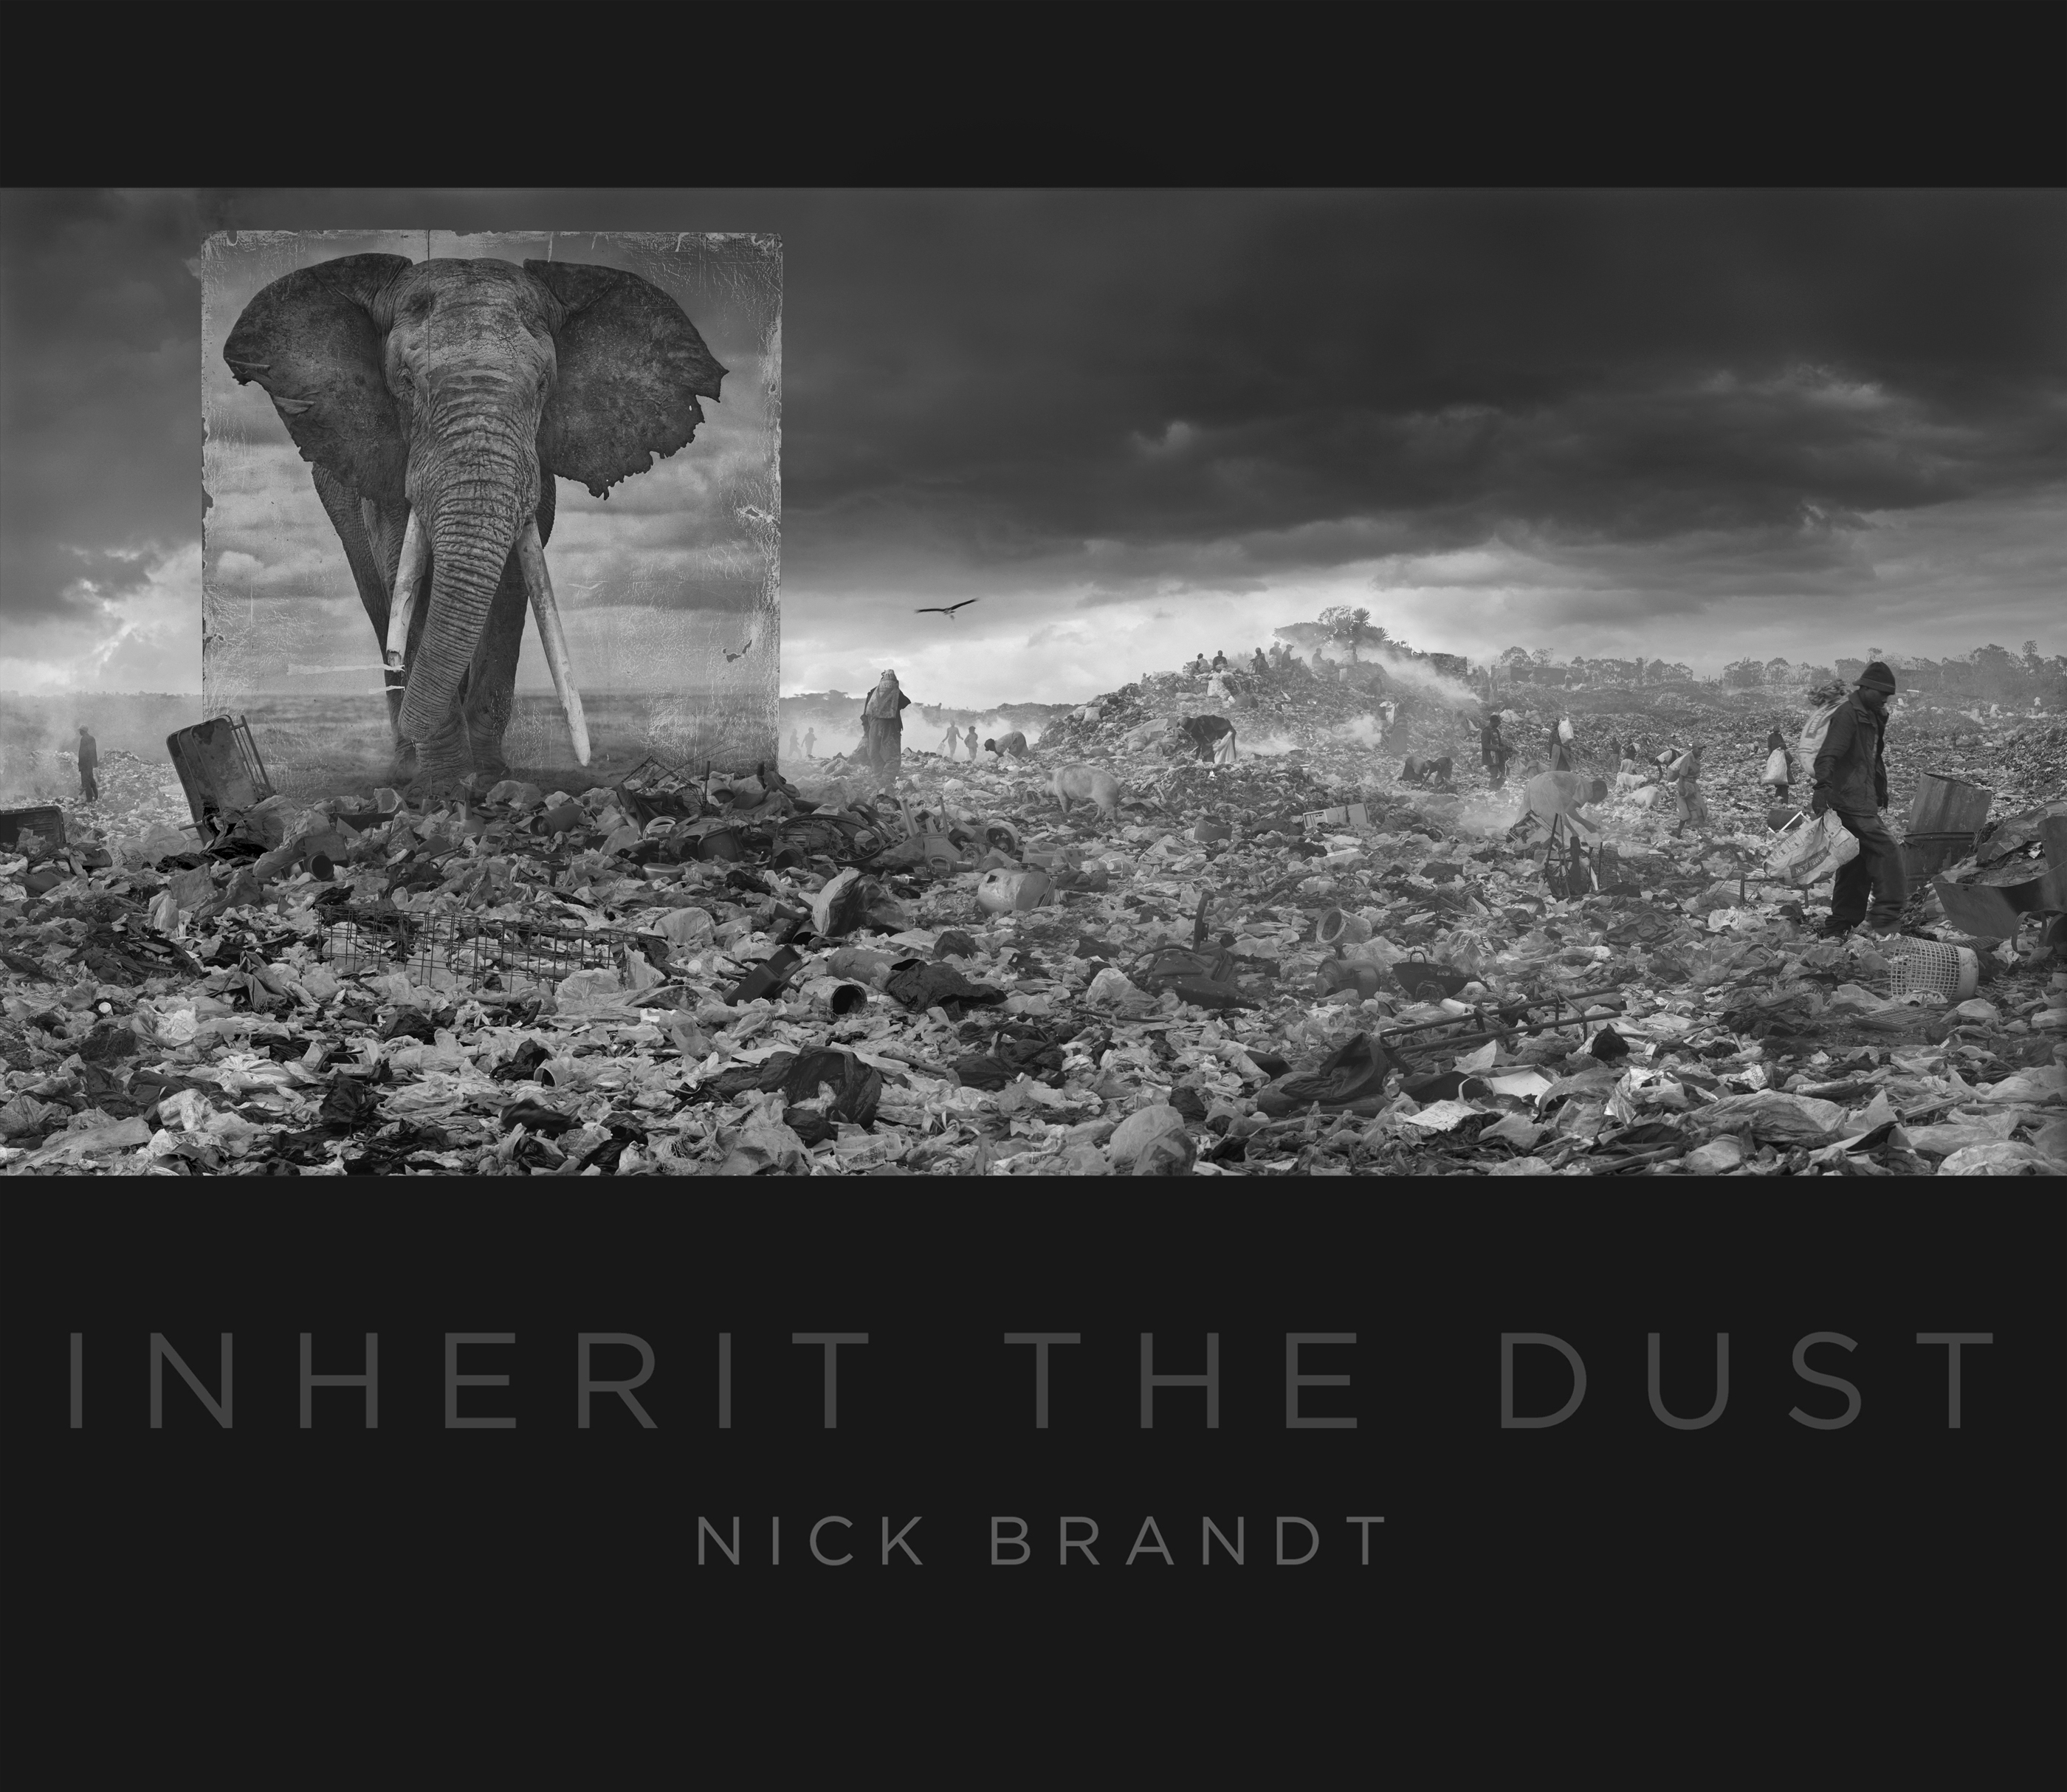 Inherit the Dust dust jacket